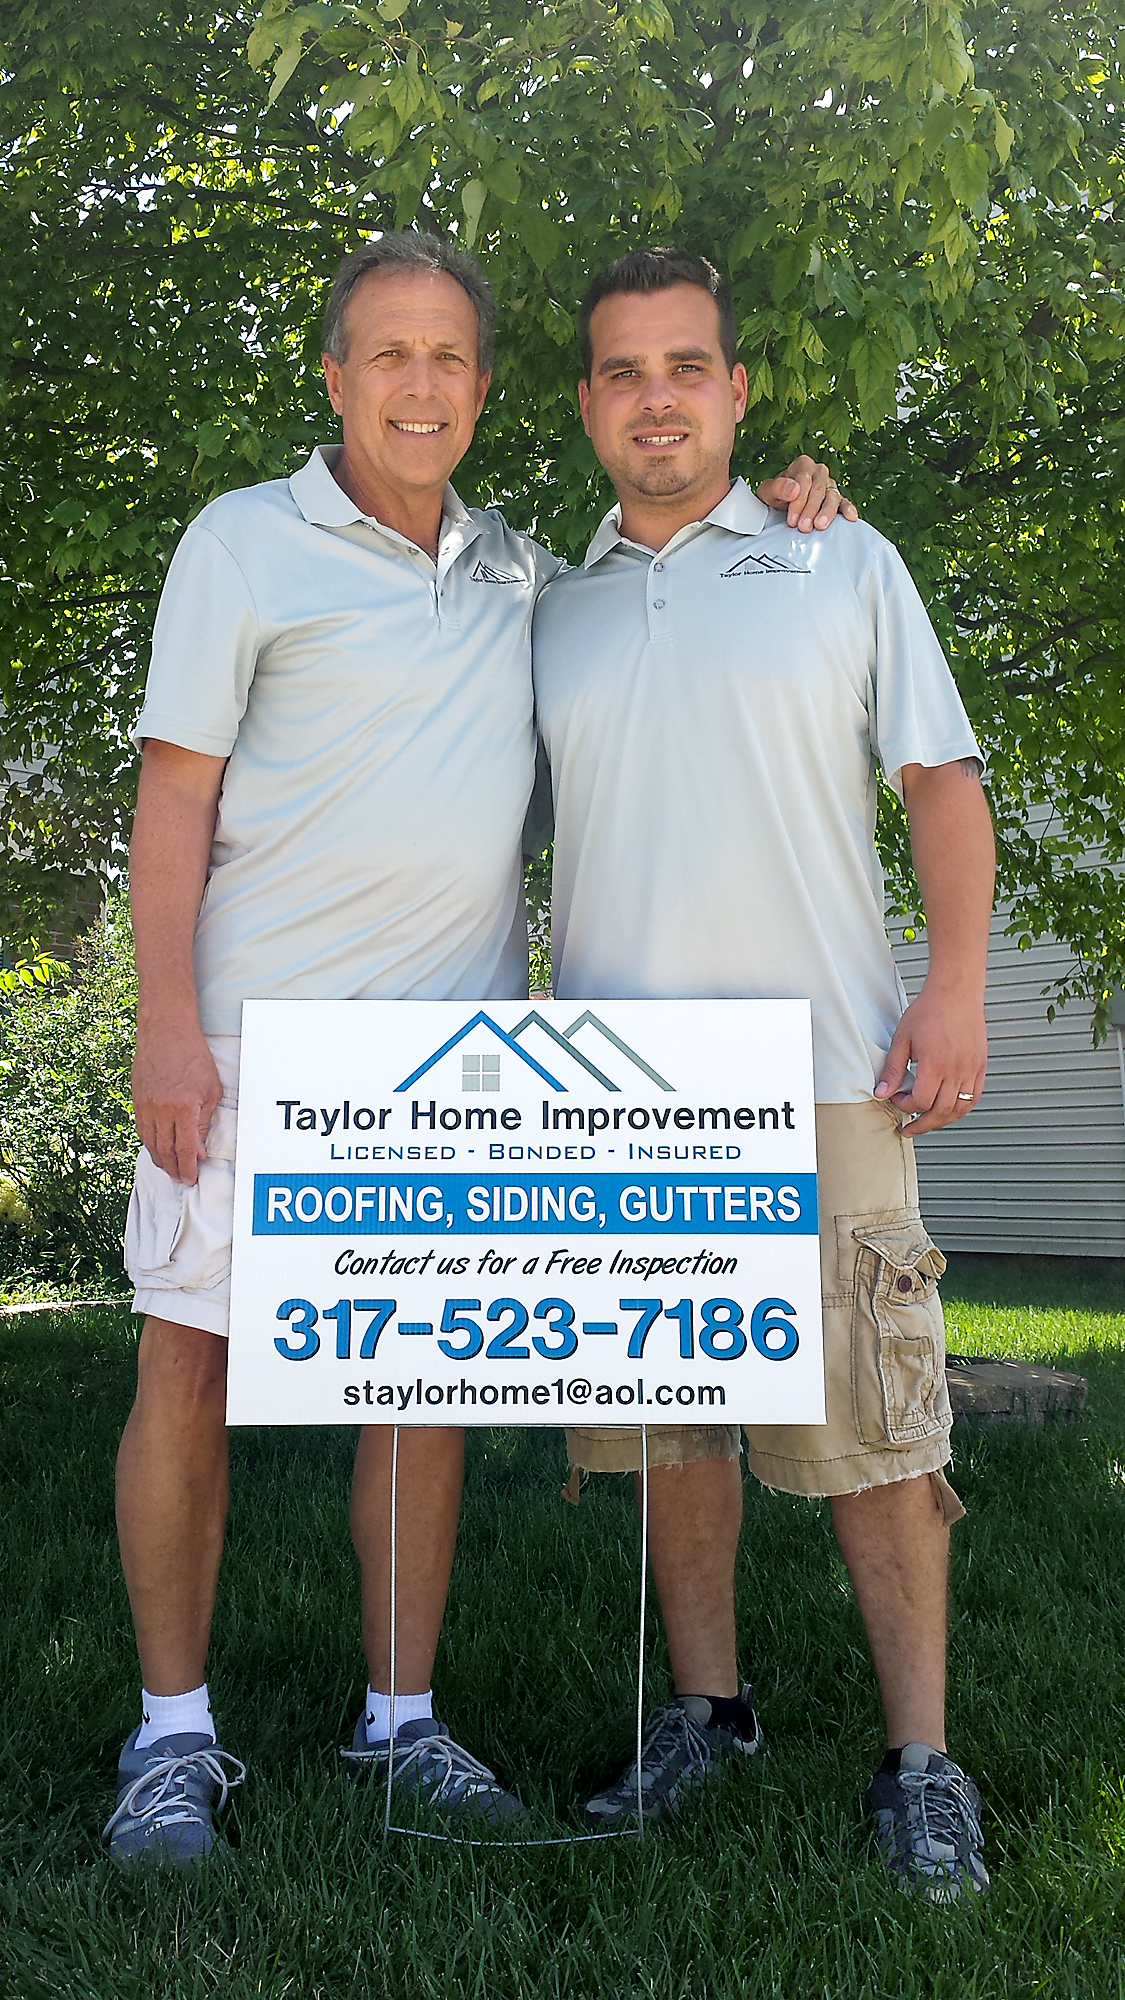 Steve Taylor, CFO of Taylor Home Improvement, left, and Adam Taylor, owner and field director, left their jobs to start a roofing/gutter/siding business. (Submitted photo)